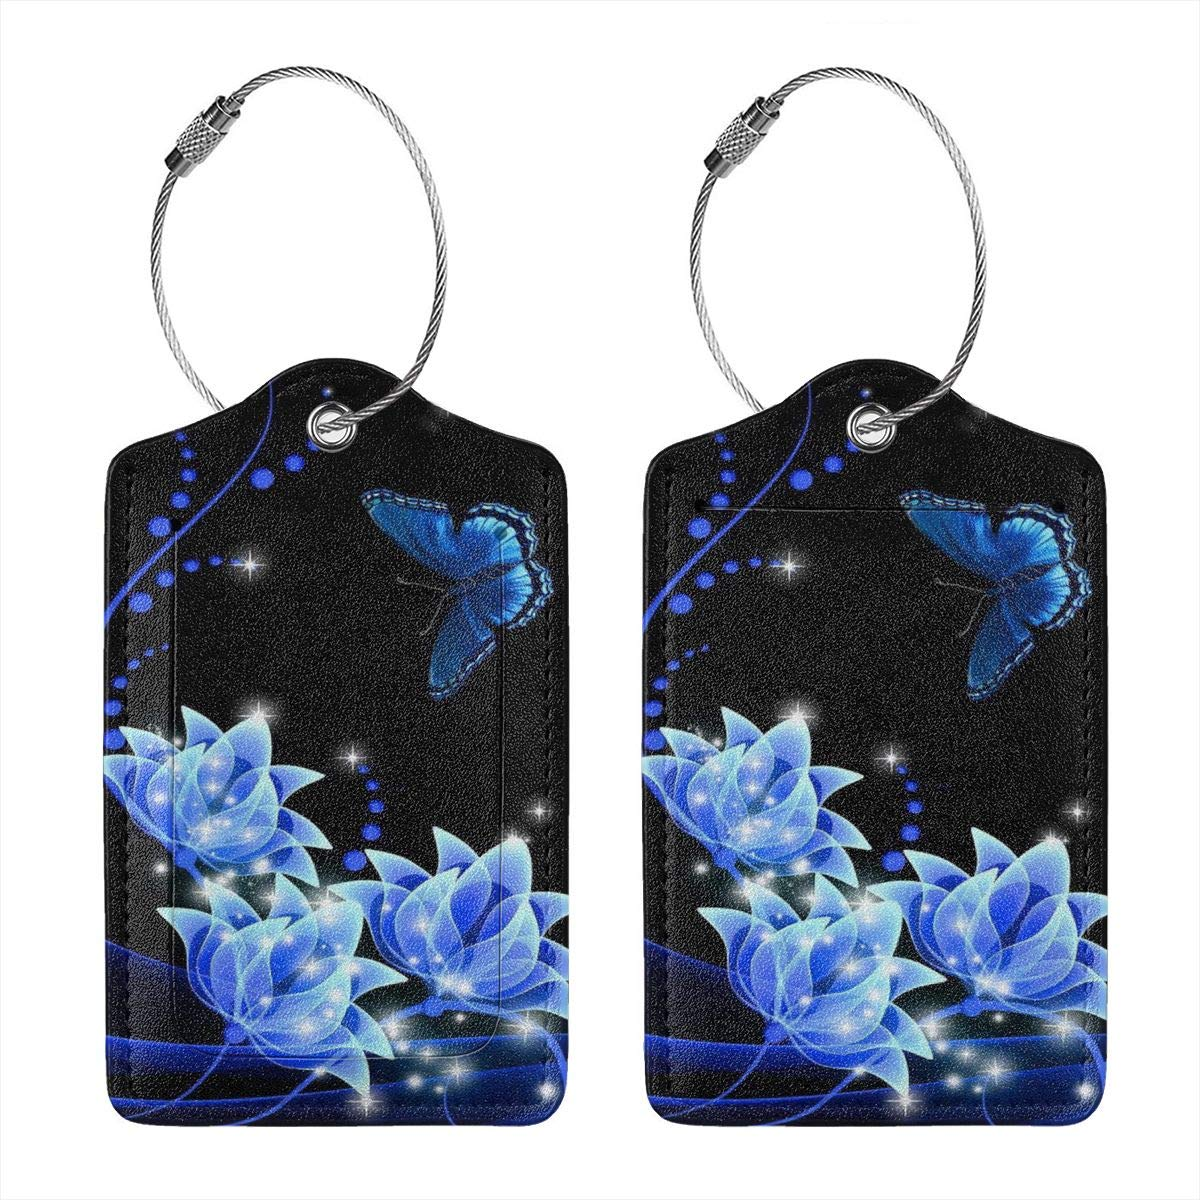 GoldK Blue Flowers Leather Luggage Tags Baggage Bag Instrument Tag Travel Labels Accessories with Privacy Cover